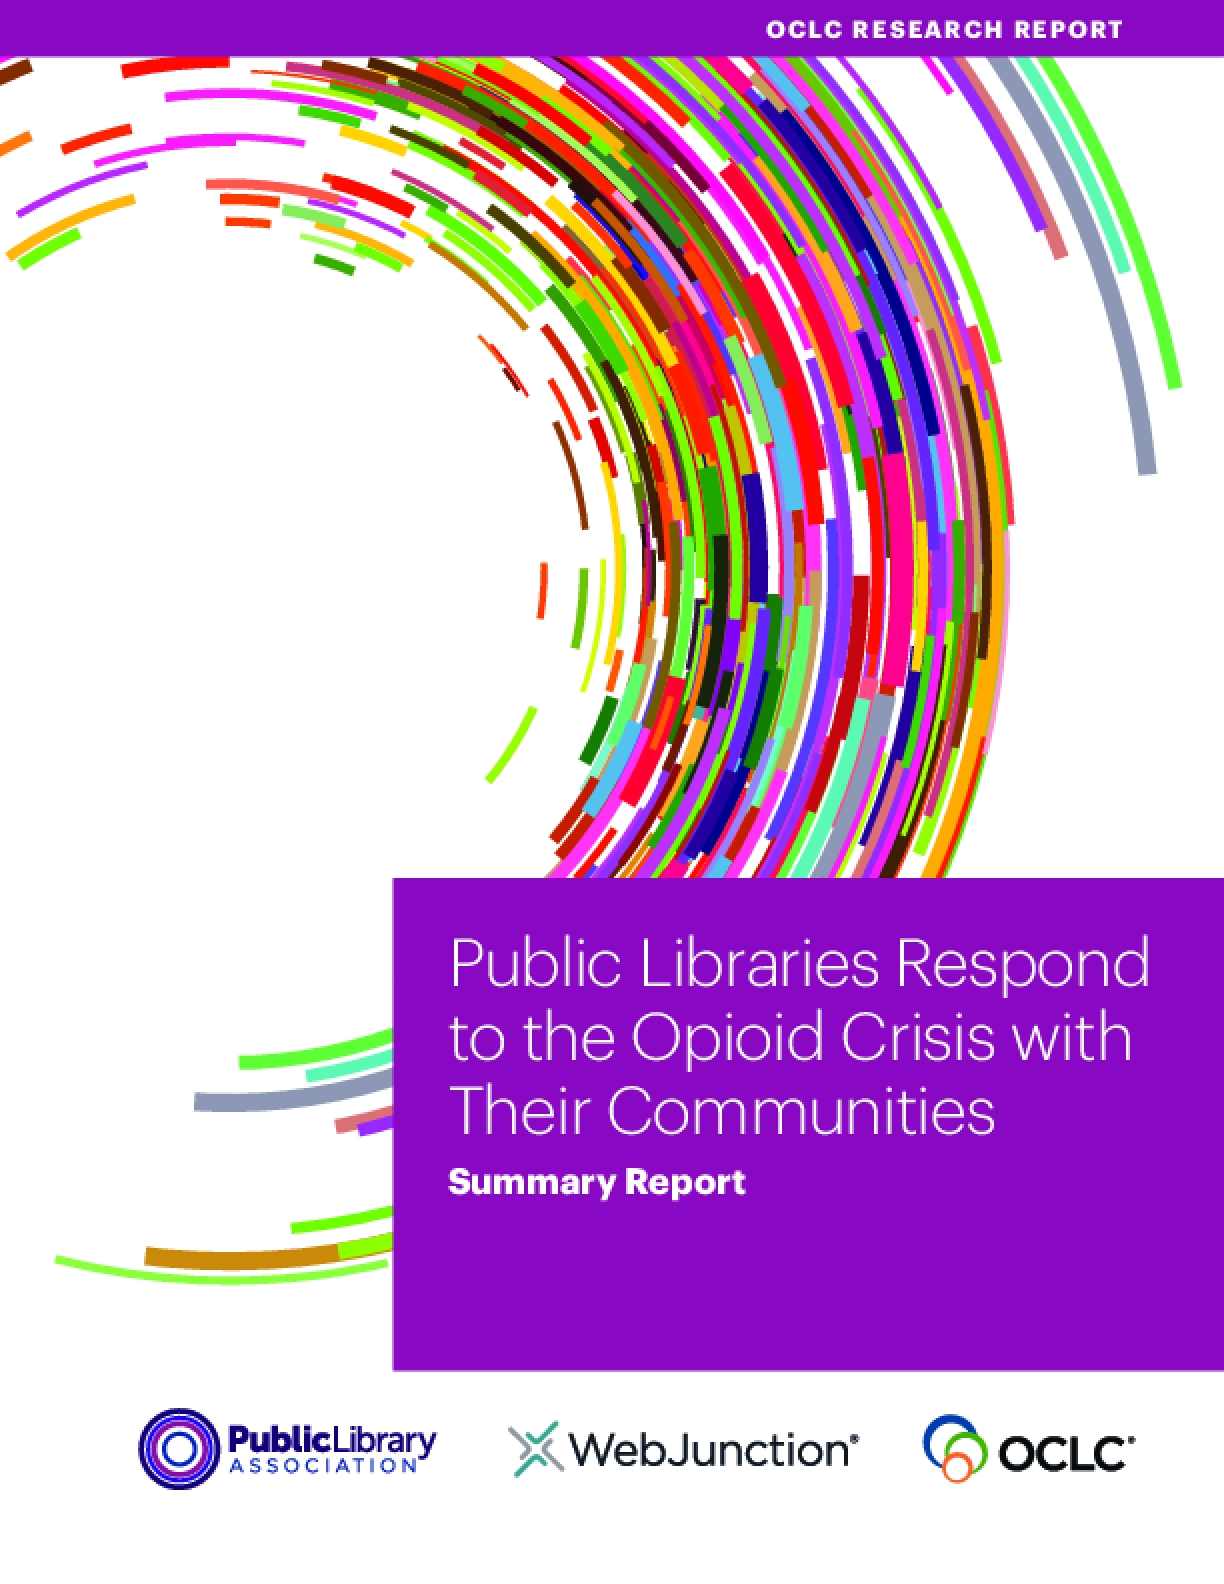 Public Libraries Respond to the Opioid Crisis with Their Communities: Summary Report